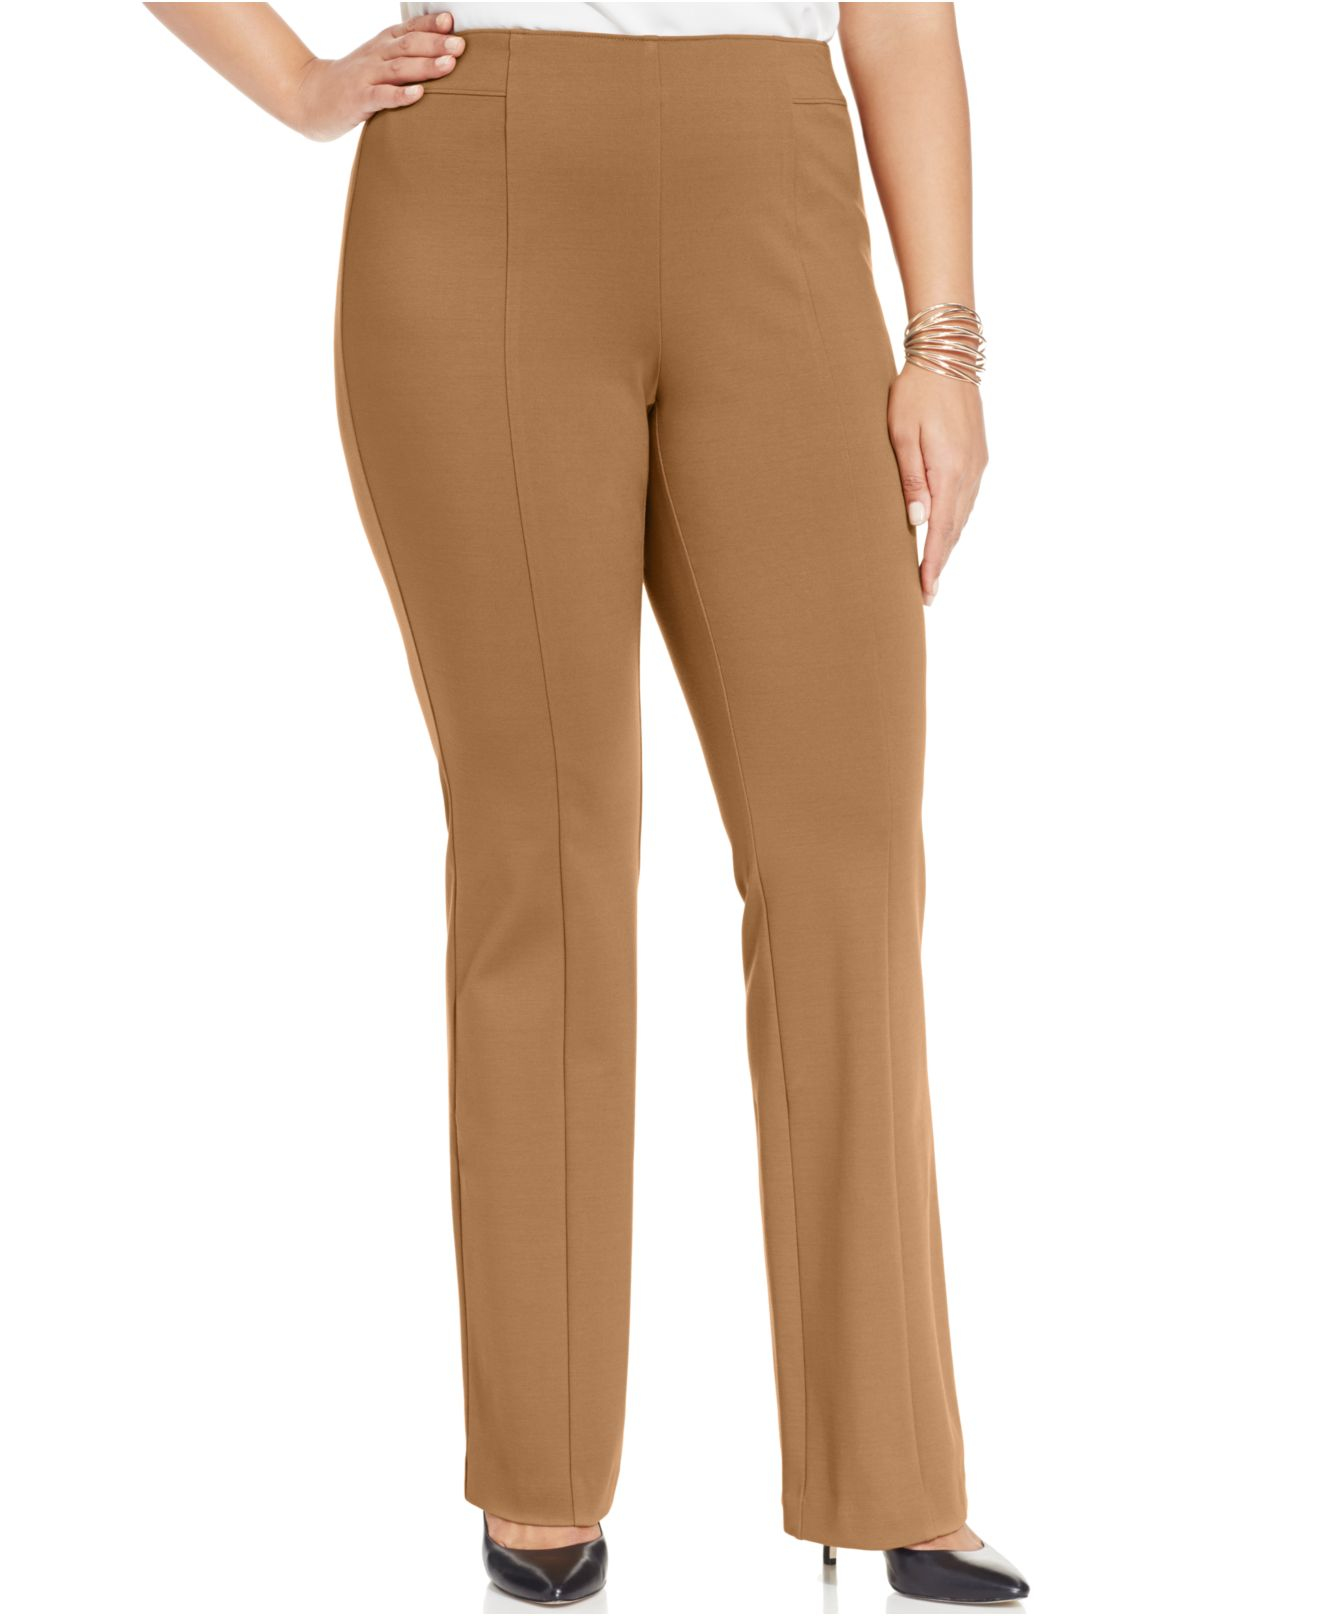 Shop pull on silk pants at Neiman Marcus, where you will find free shipping on the latest in fashion from top designers. More Details Caroline Rose Straight-Leg Silk Crepe Pull-On Pants, Plus Size Details Caroline Rose pants in silk crepe. Elasticized waistband. Relaxed fit. Straight legs. Pocketless design. Pull-on style. Unlined. Imported.